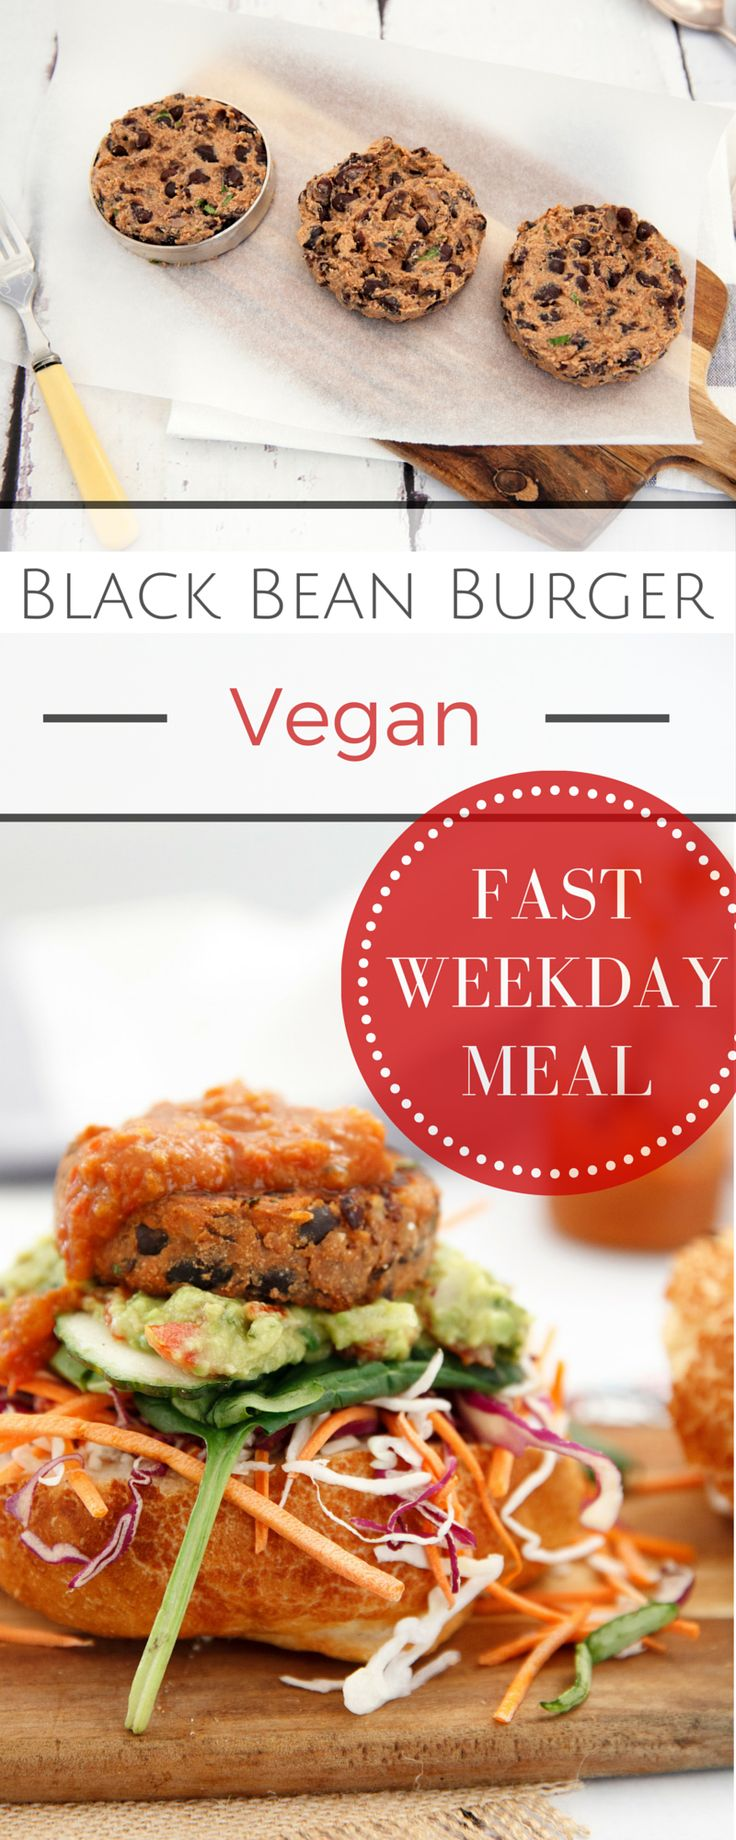 Delicious & Quick!! These Black Bean Burgers are YUM! Pin for a fast Vegan Burger! Also Gluten Free if you use GF buns. #vegan #GF #Burger #glutenfree #deliciouslyella